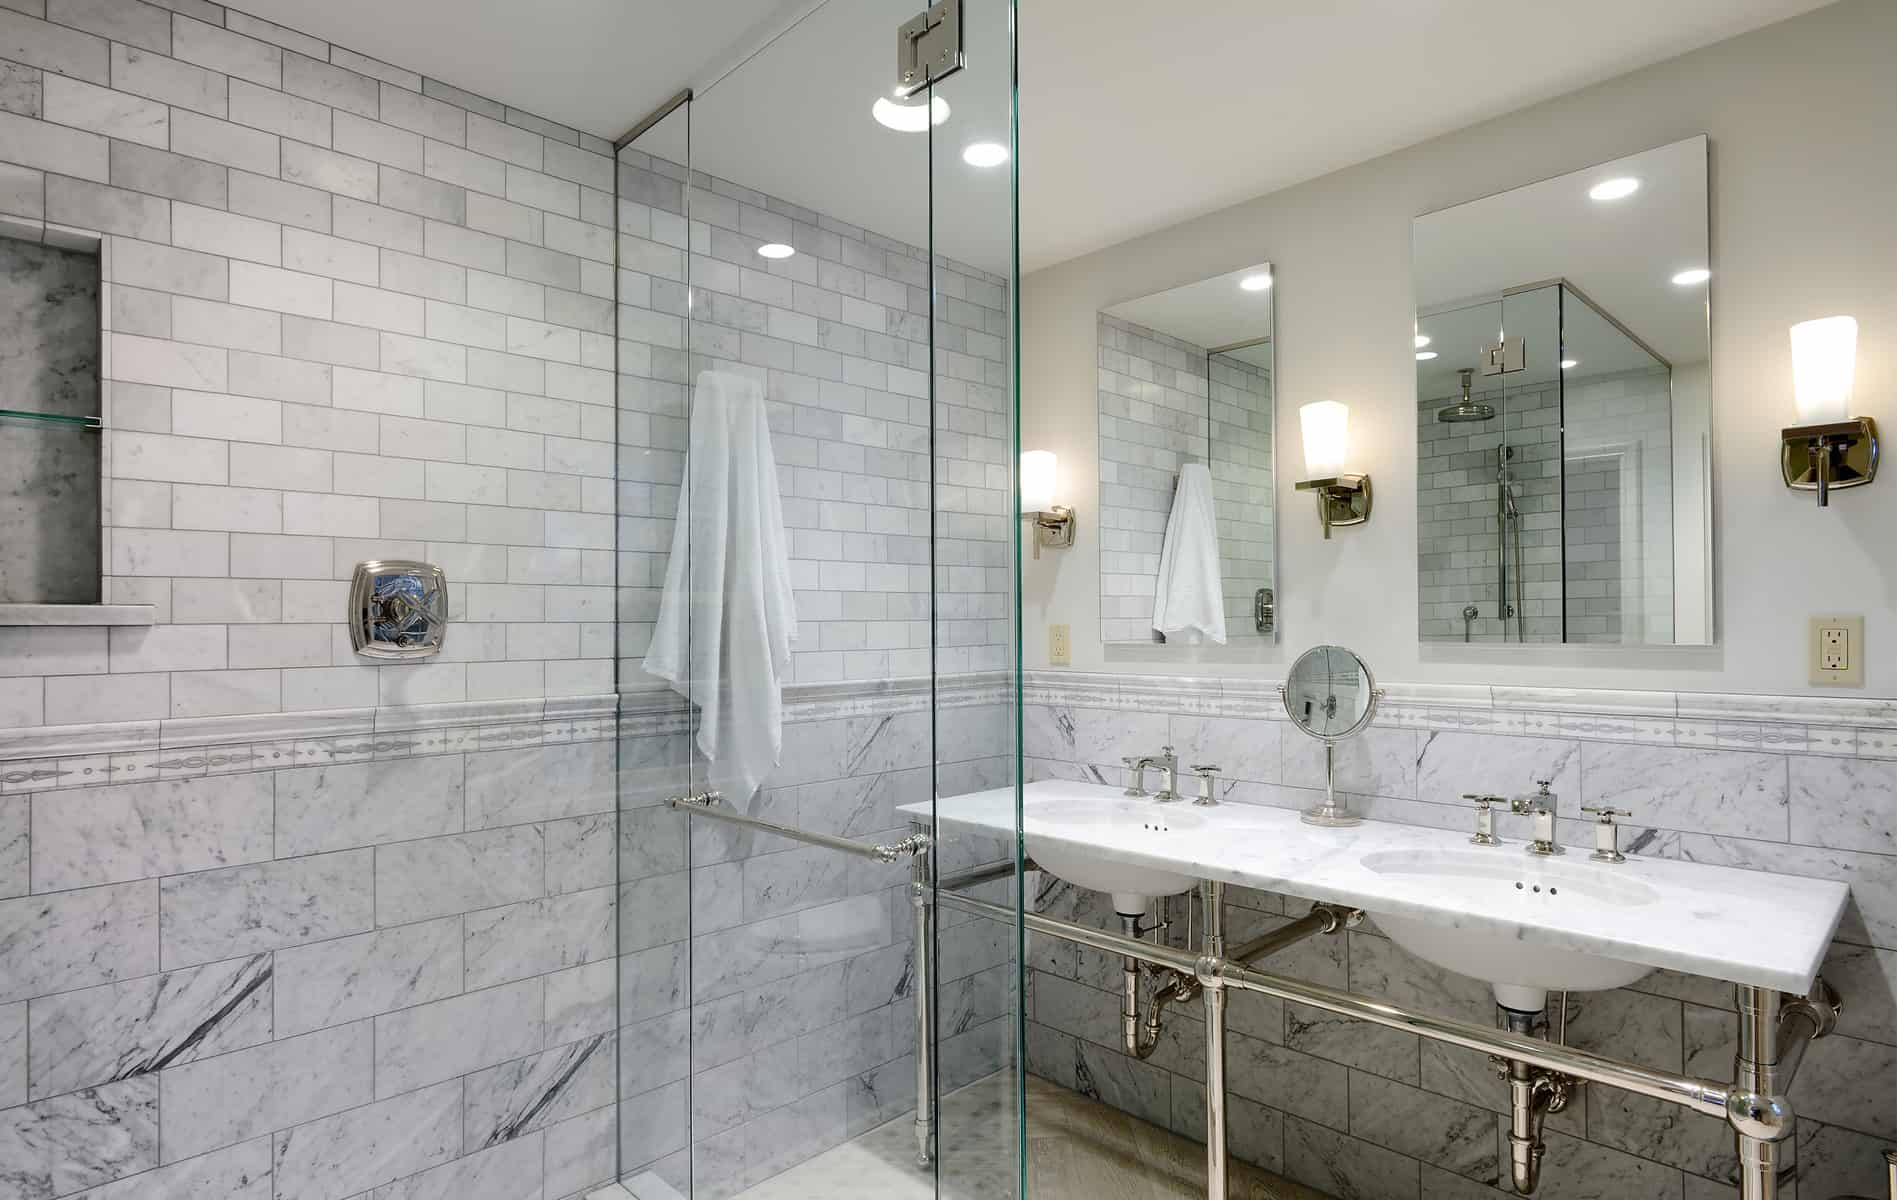 bath ny remodeling contractors right kitchen built home bathroom company lockport